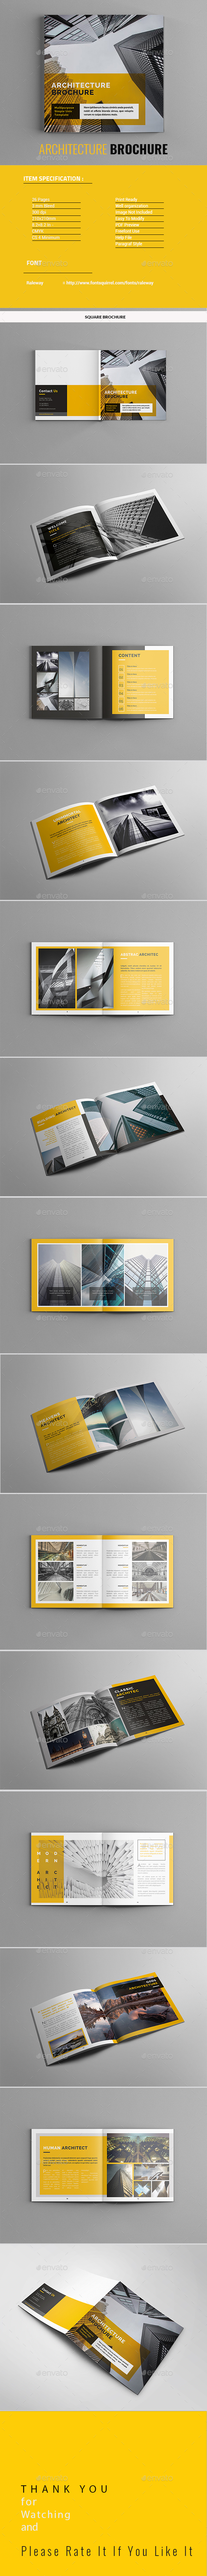 GraphicRiver Architecture Brochure 21179734